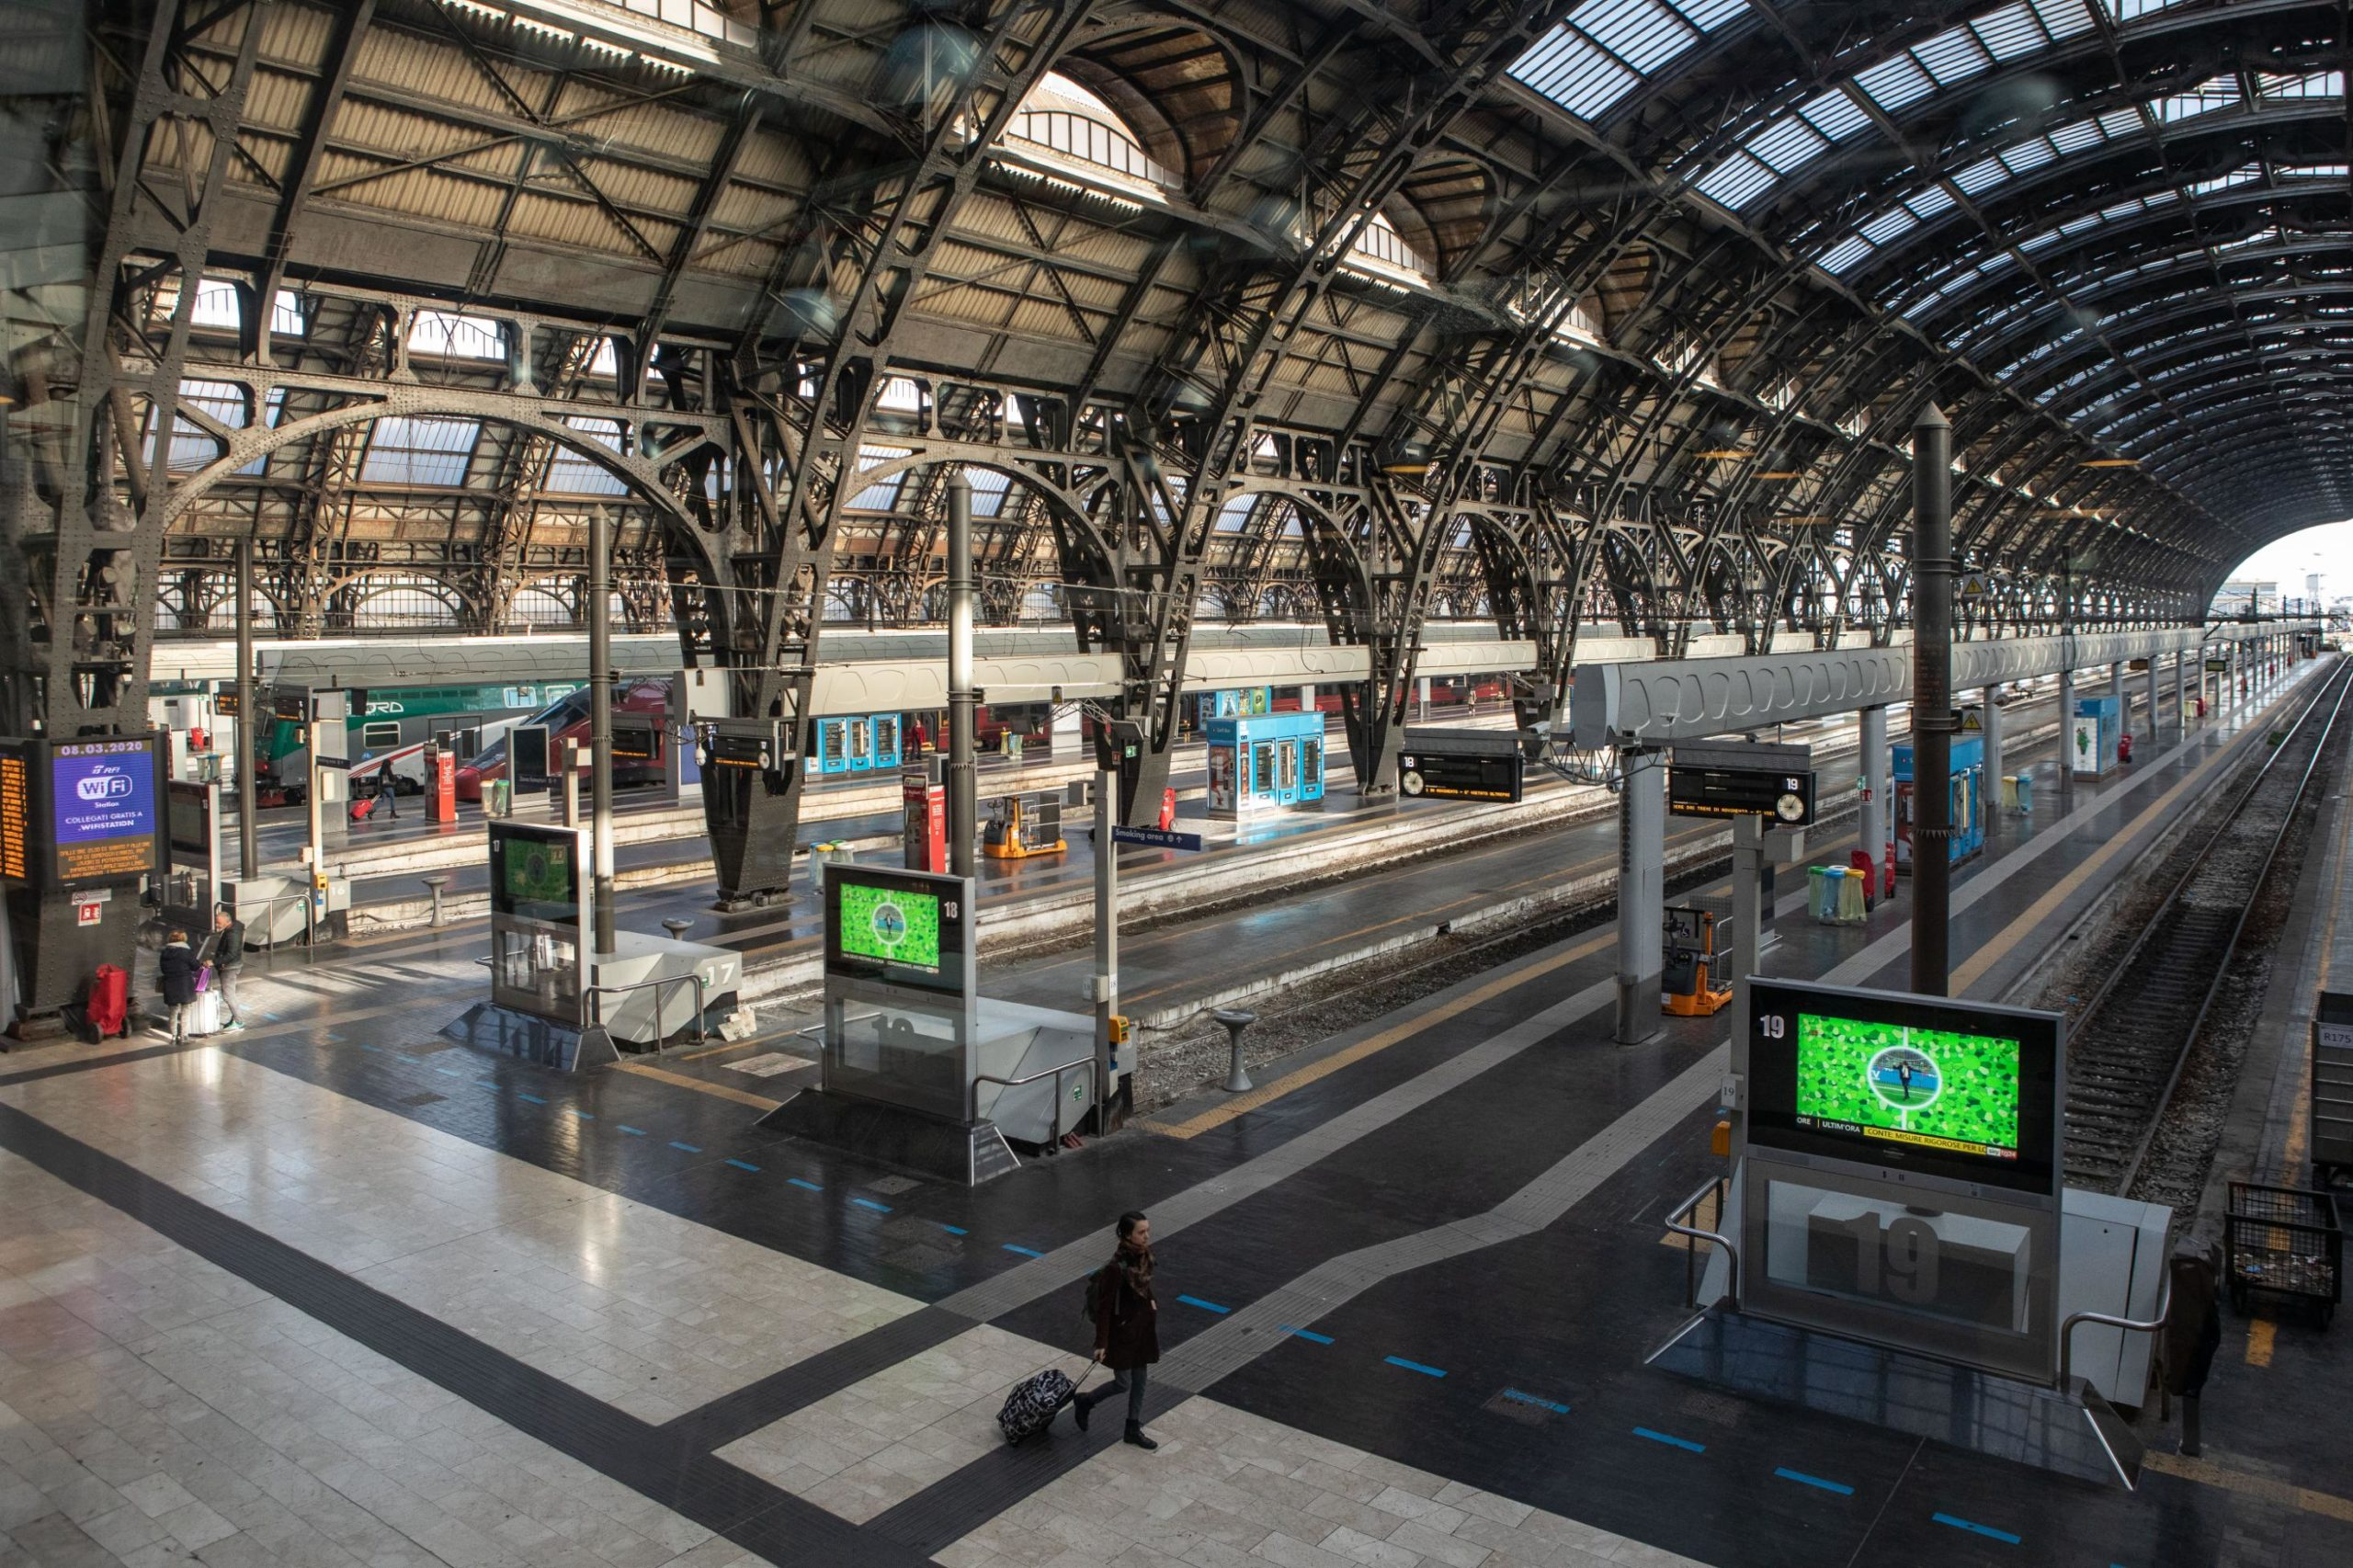 A woman walks in the almost deserted Central Station in Italy after the lockdown was imposed.